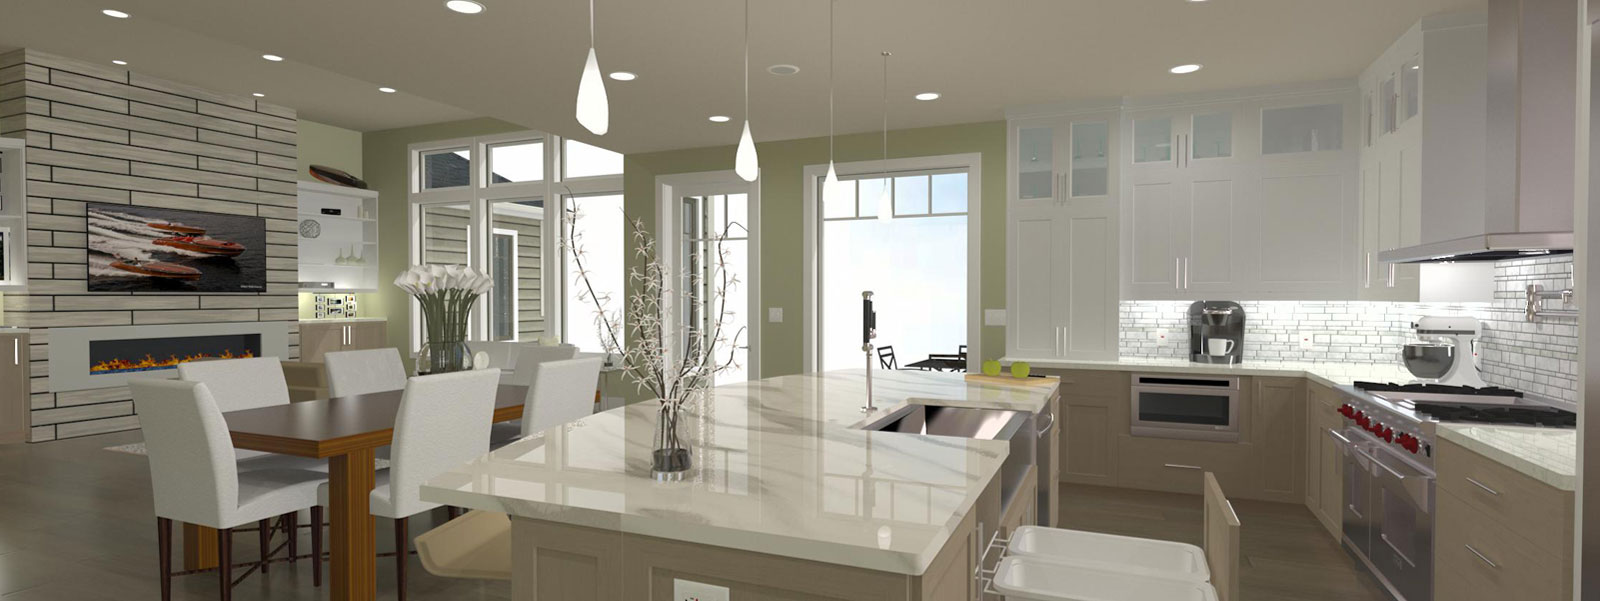 Kitchen Design Room Kitchen Design Software Chief Architect